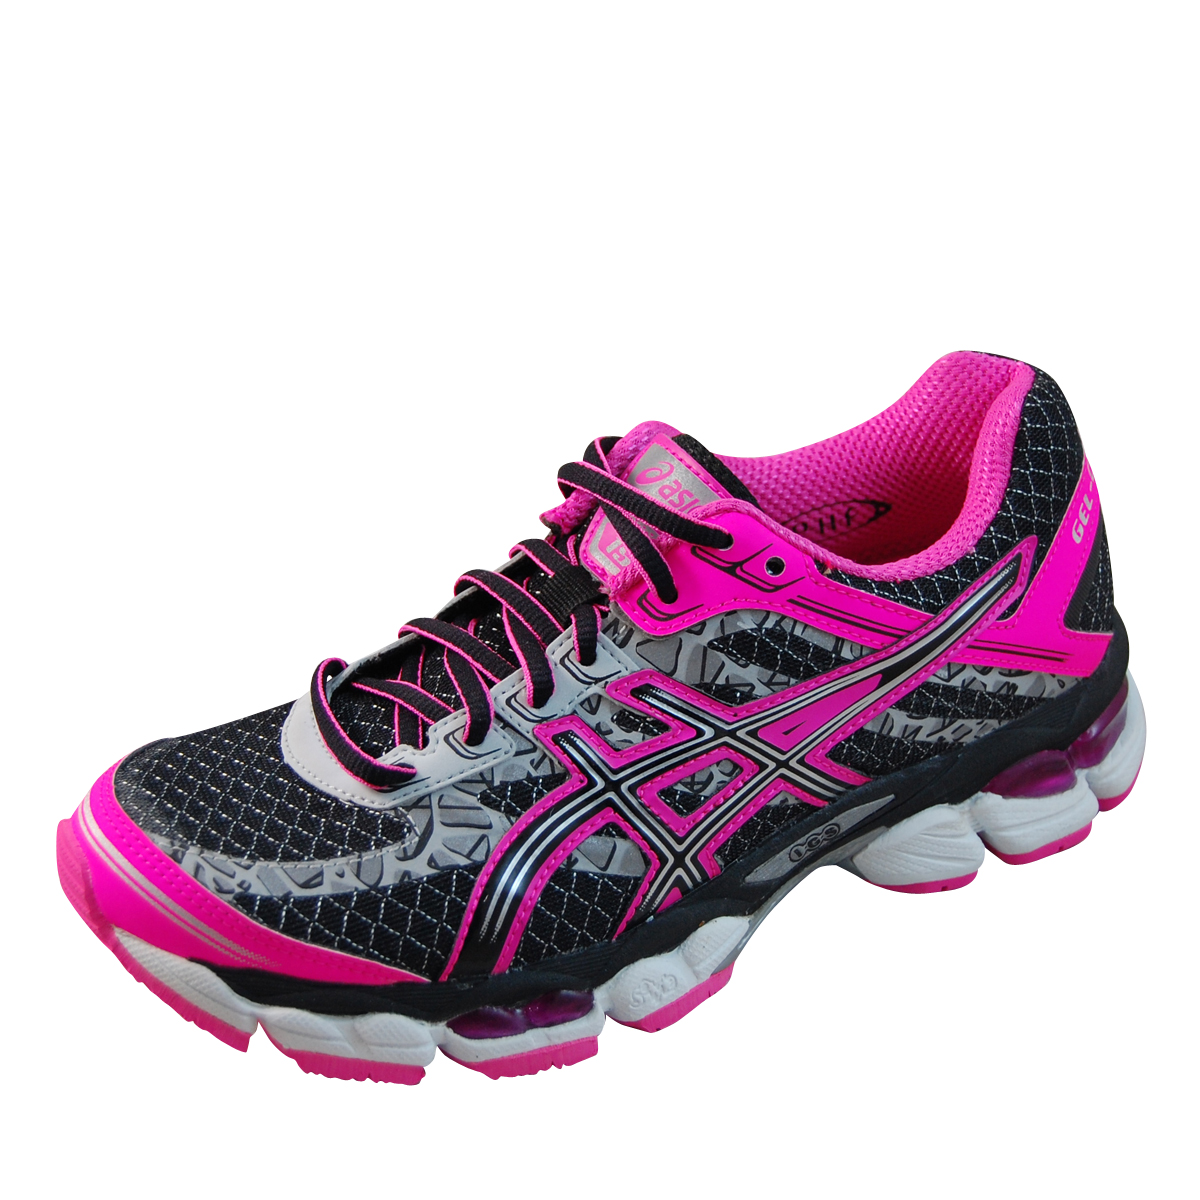 Buy asics gel cumulus 15 mens sale   Up to OFF63% Discounted 0866940845